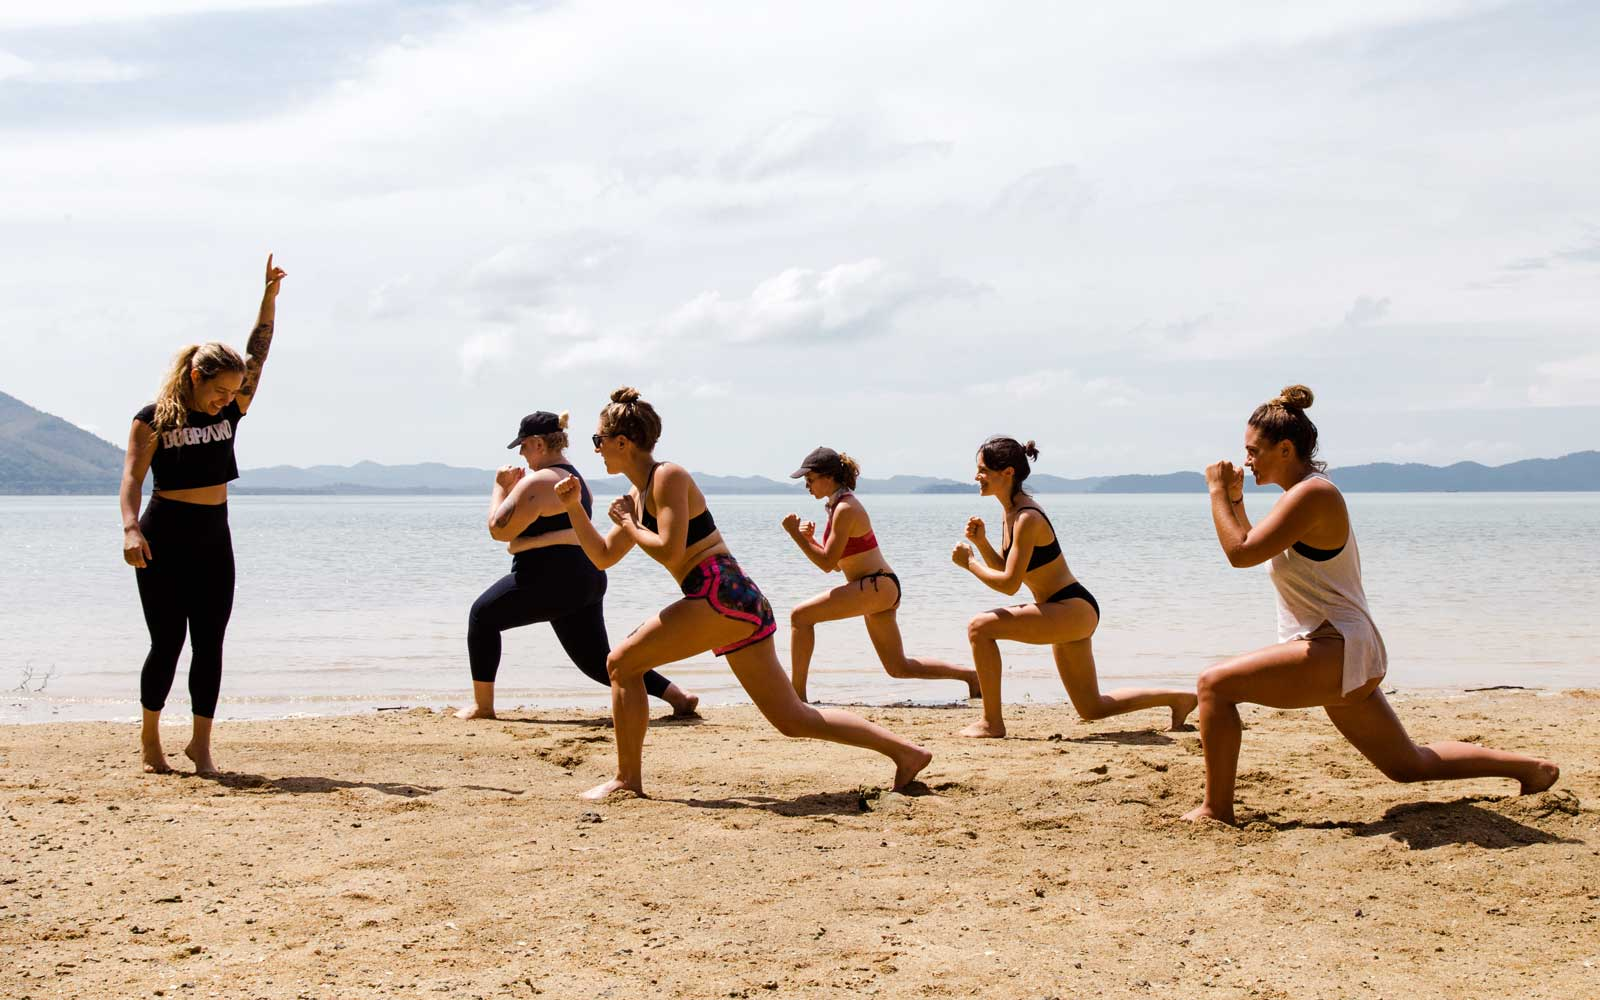 We Tried Out The All-Female Wellness Retreat Run by Fashion Brand Free People